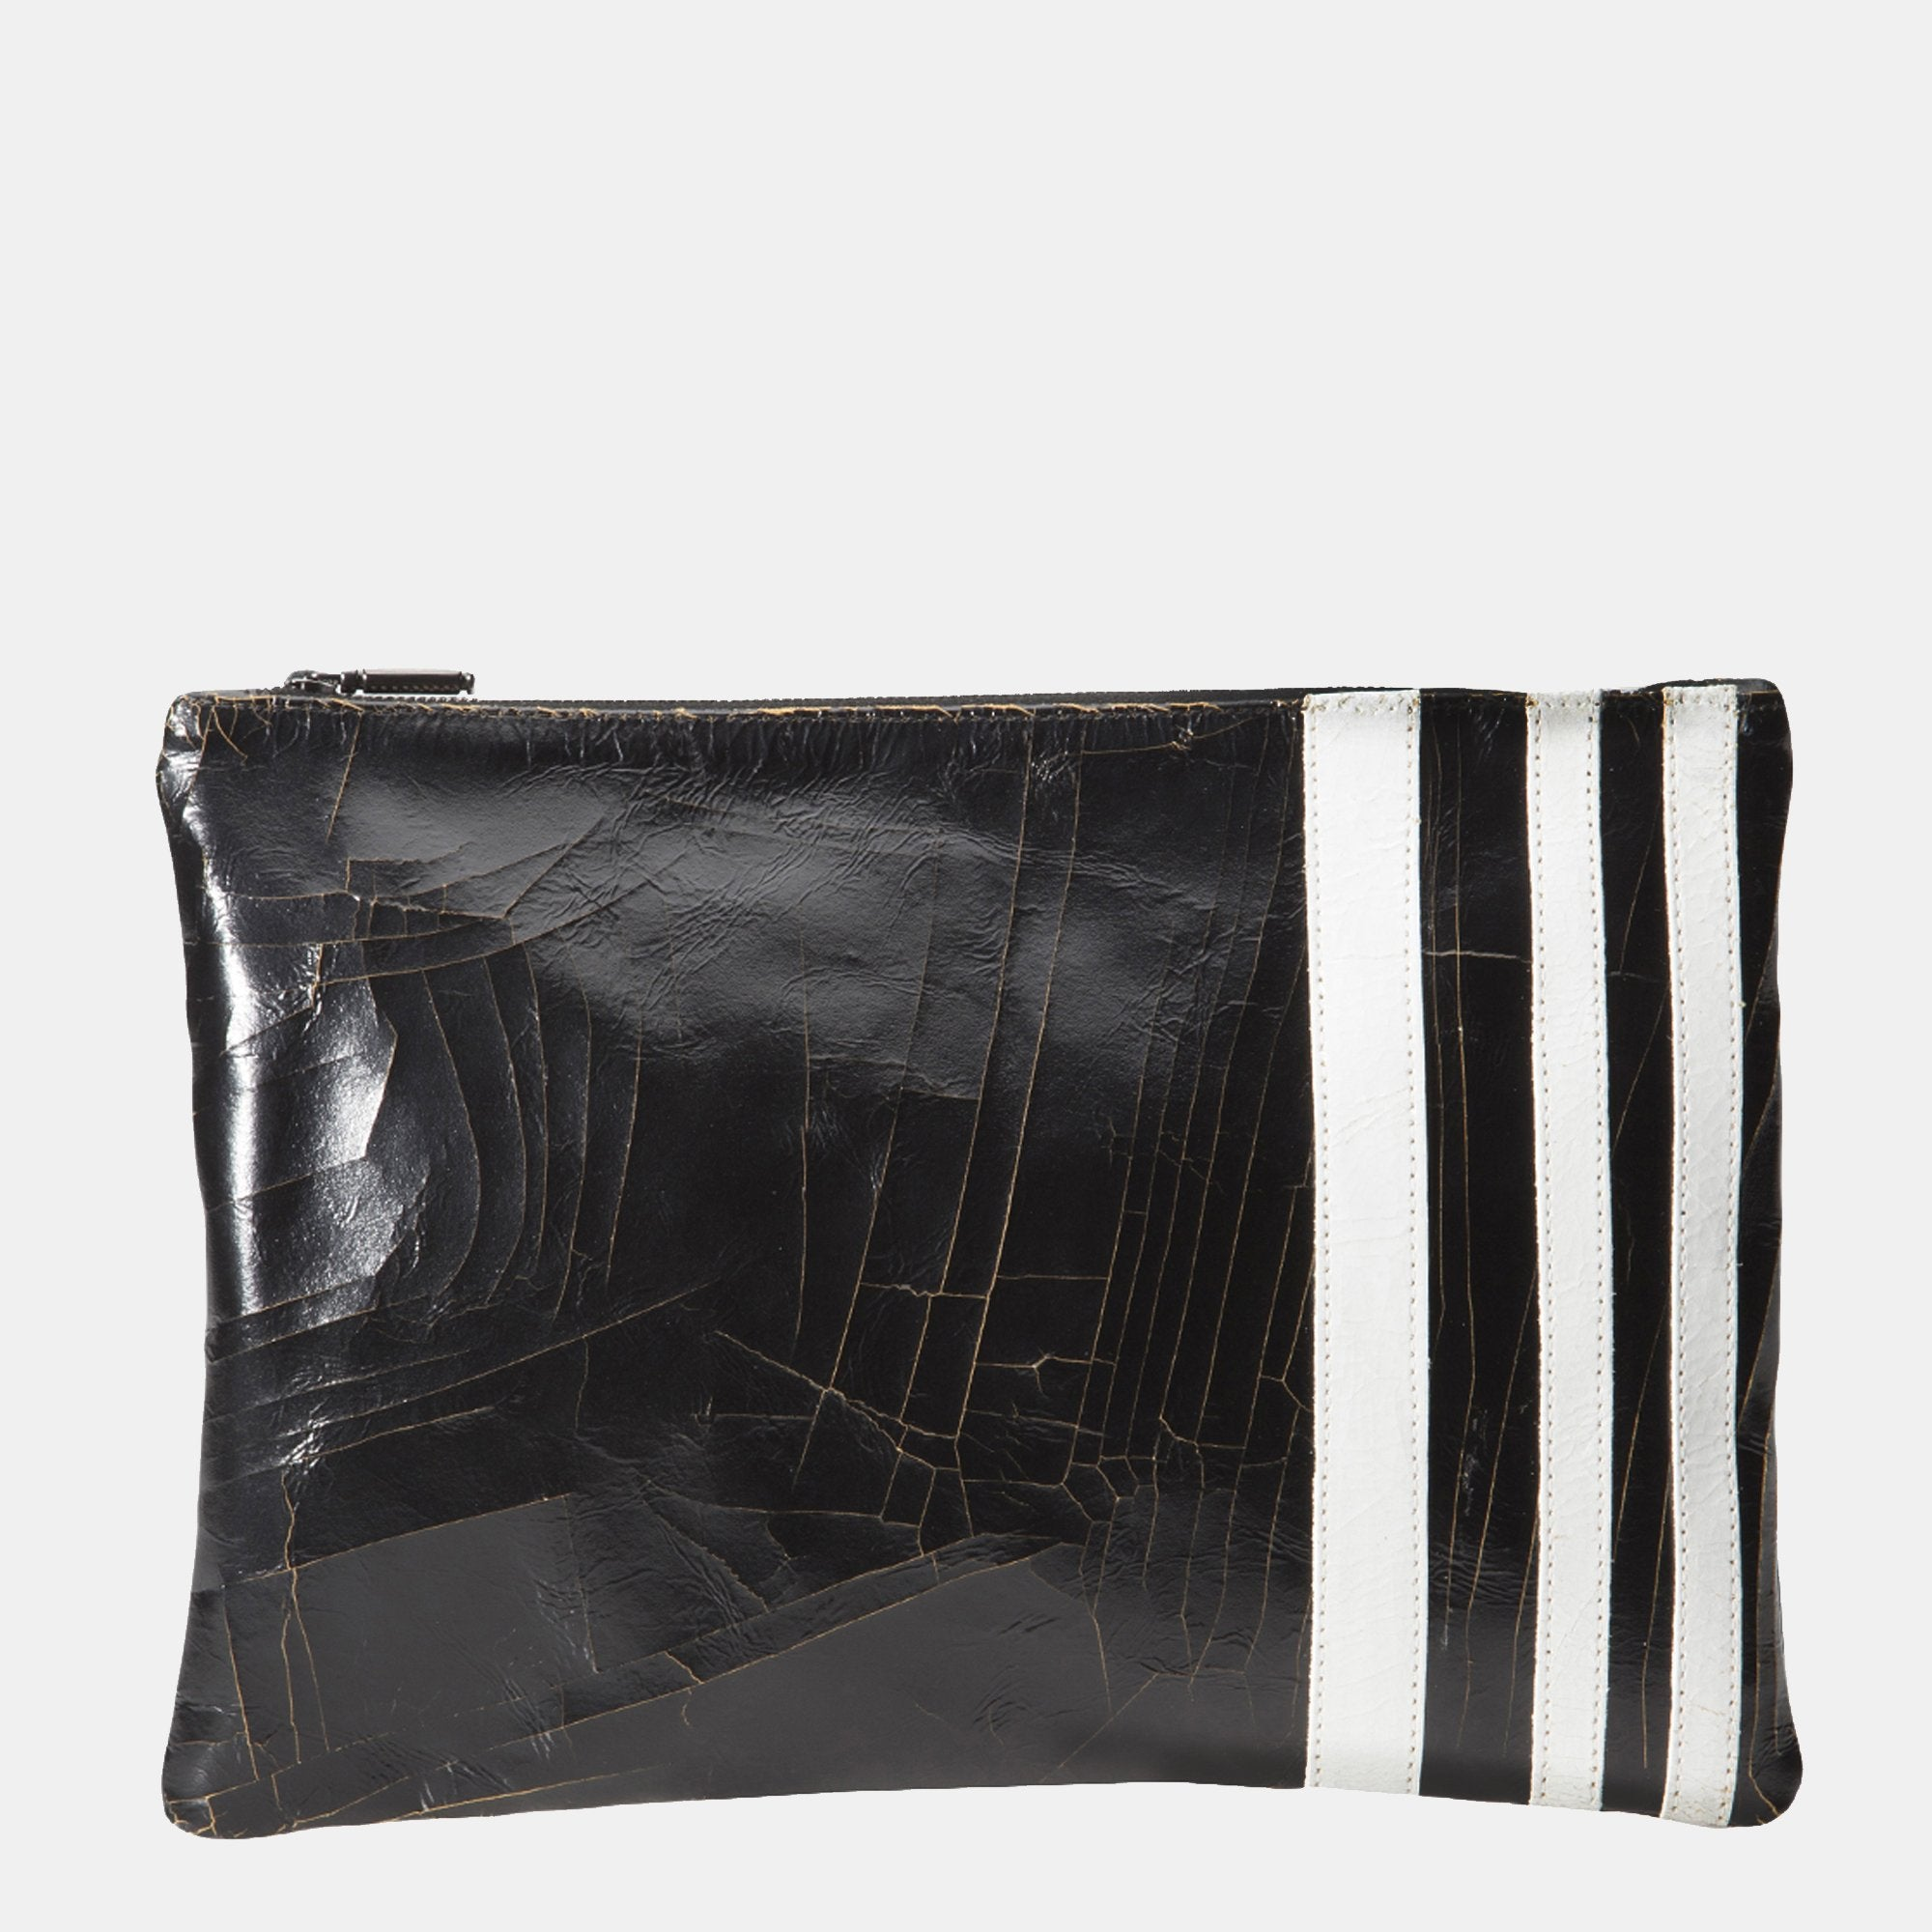 Luxury leather sustainable silk zip pouch cosmetics bag clutch stripes